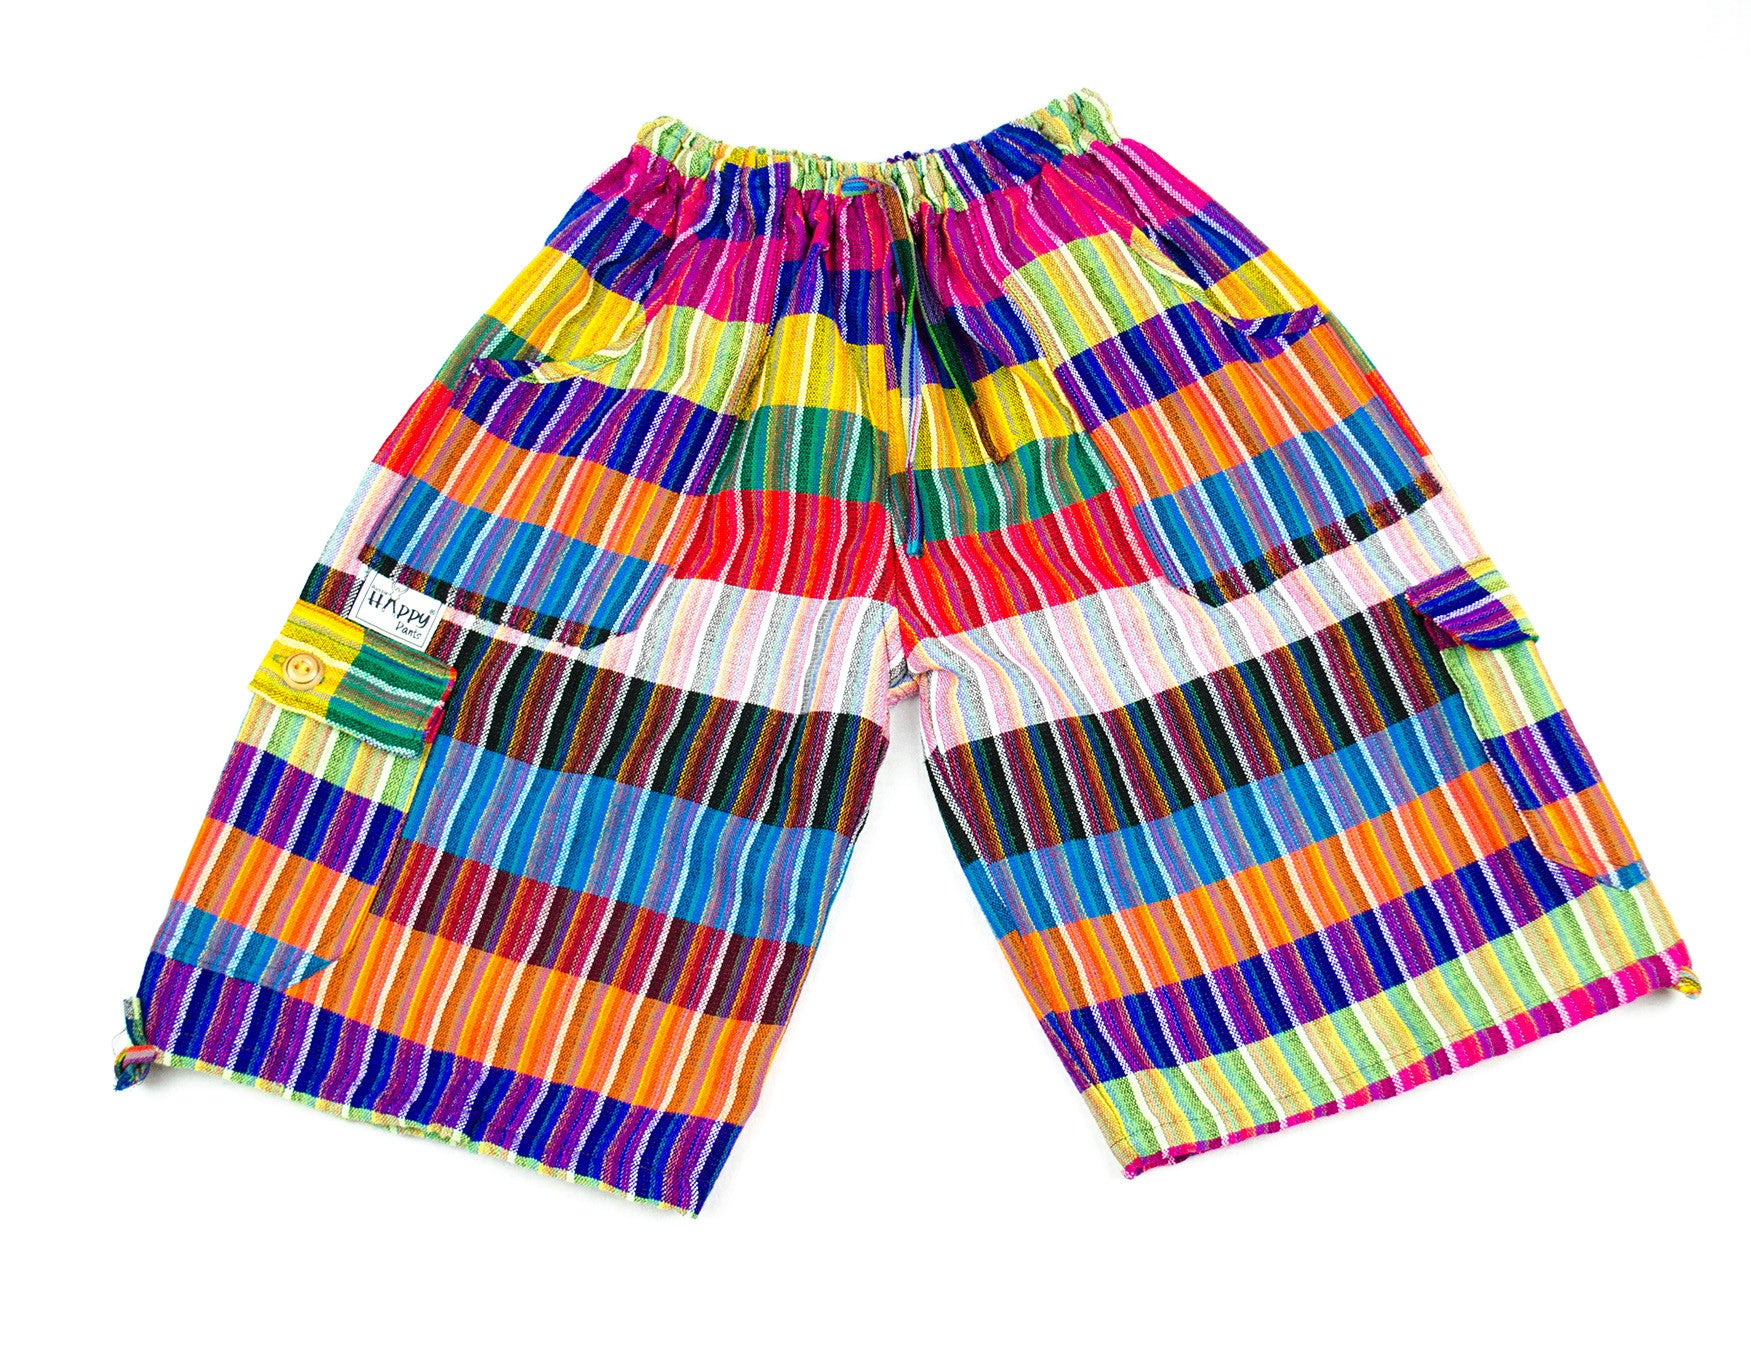 Colourful Capri Boardshorts - Happy Pants